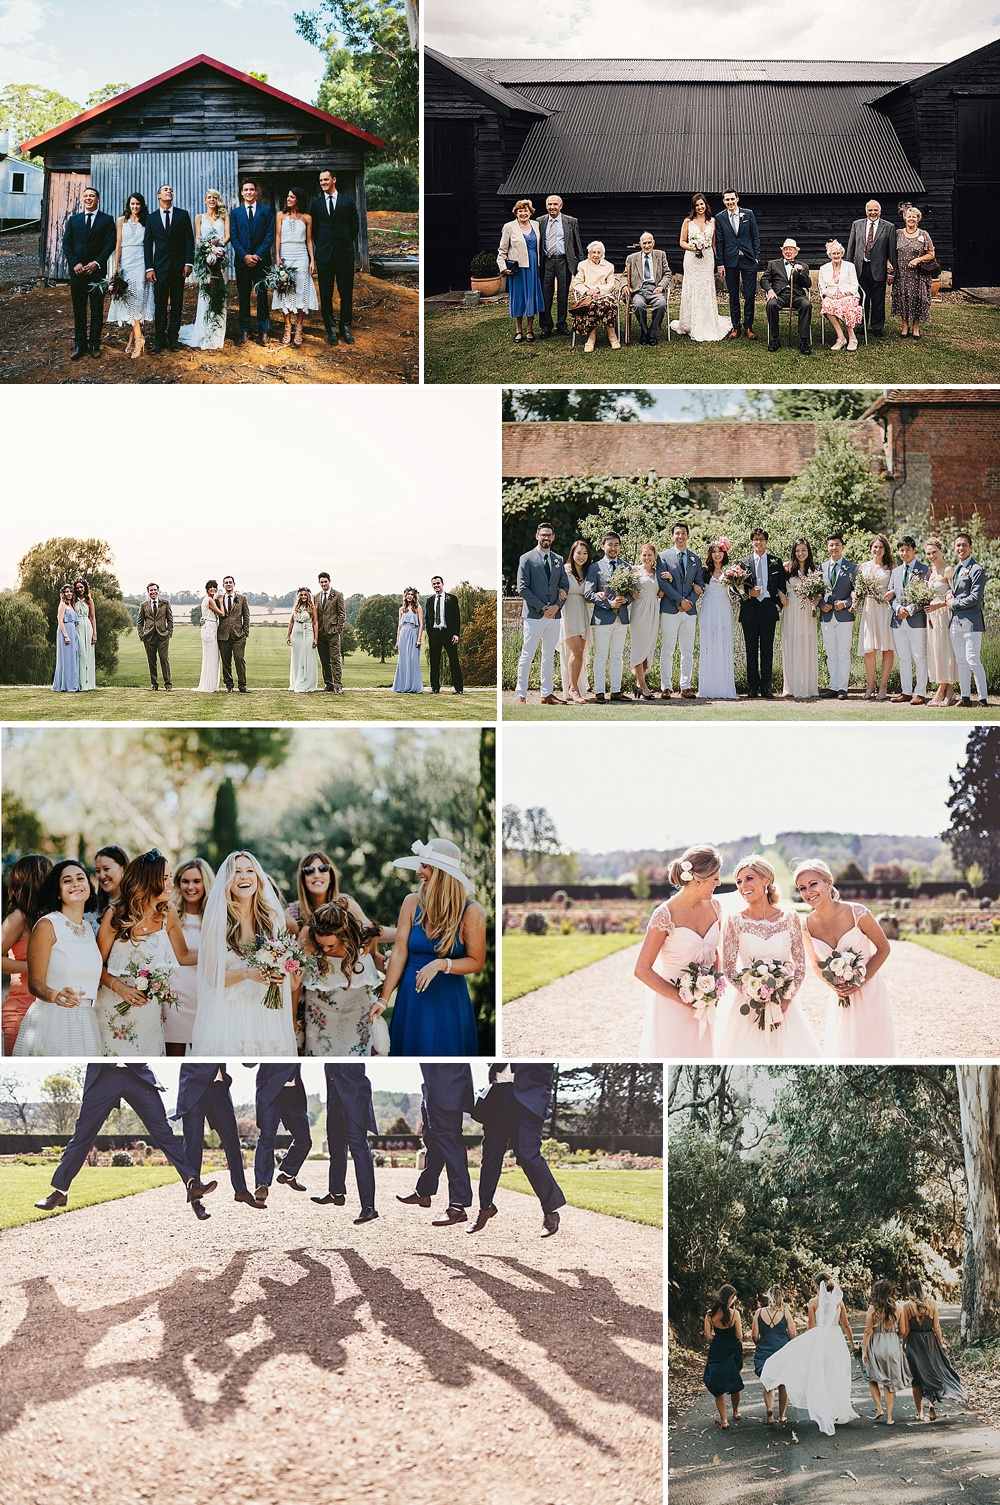 Fun & Relaxed Wedding Group Portraits